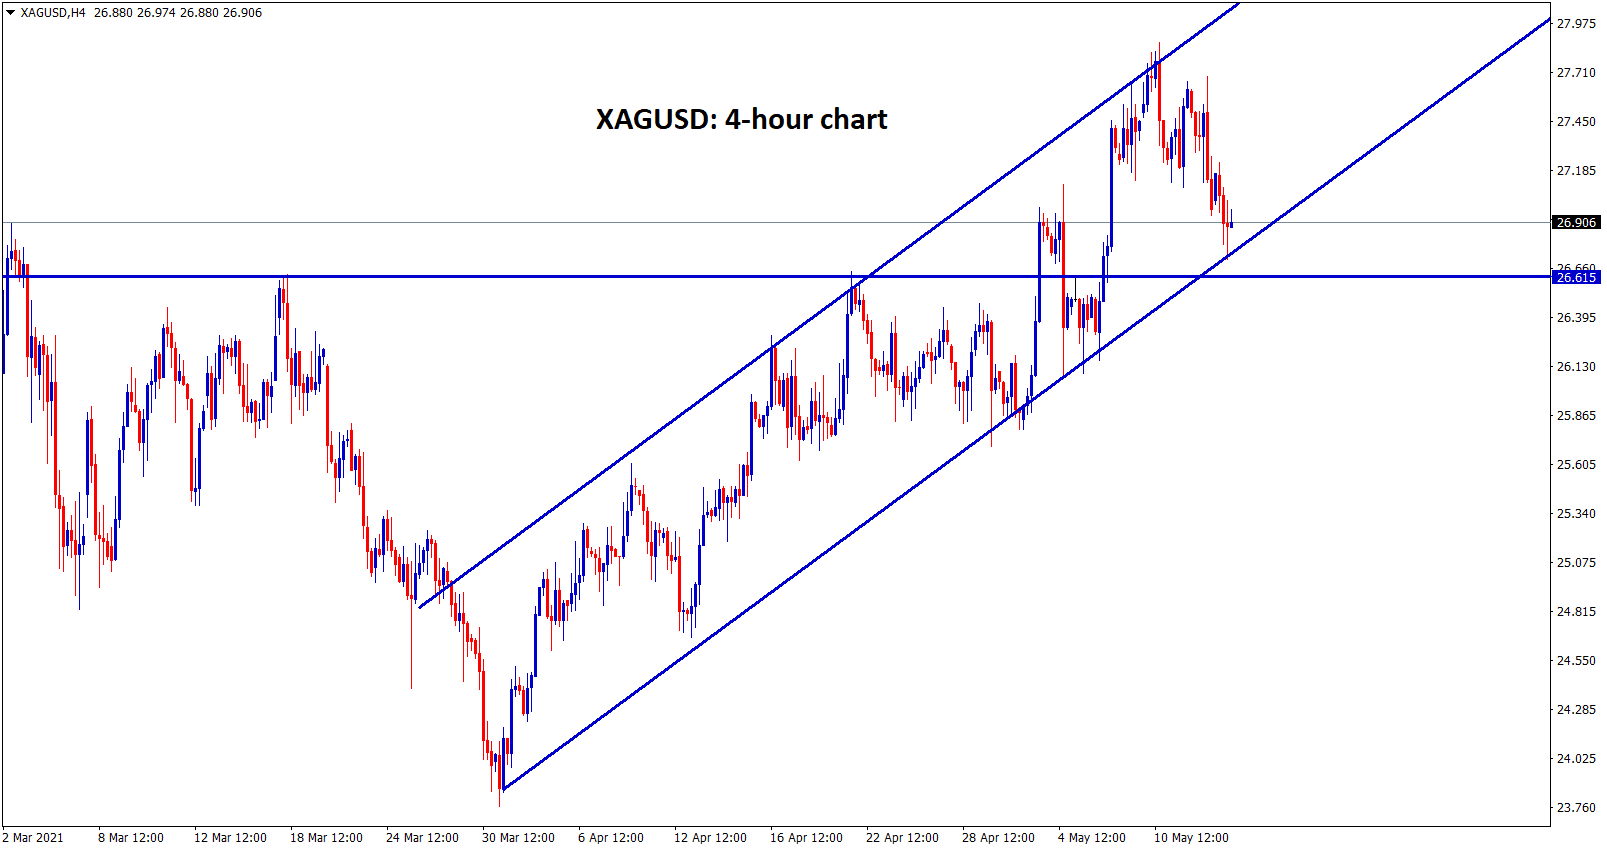 Silver XAGUSD moving in an ascending channel pattern